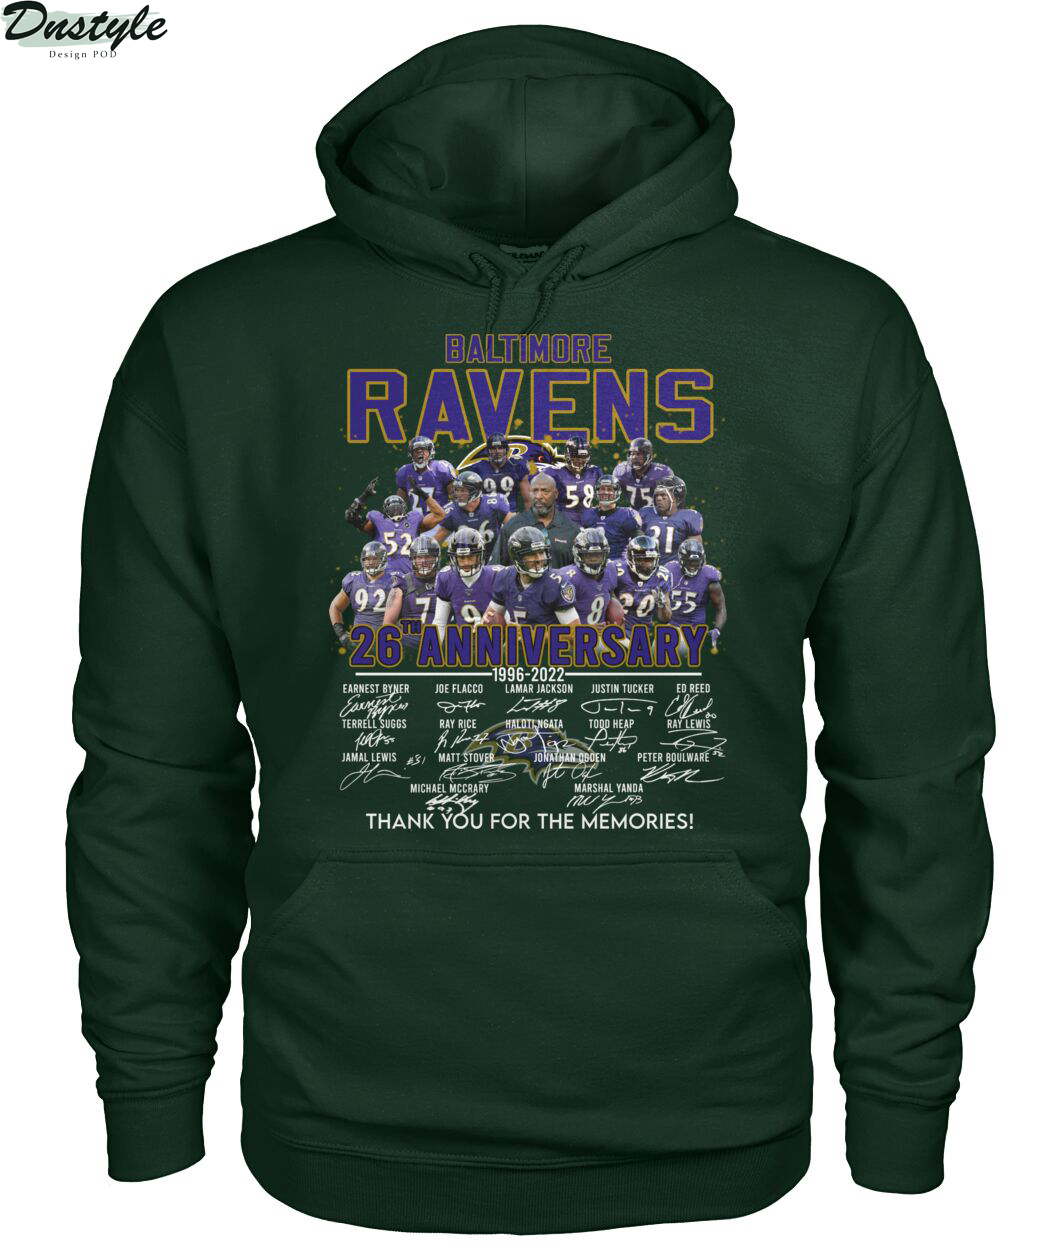 Baltimore ravens 26th anniversary thank you for the memories hoodie